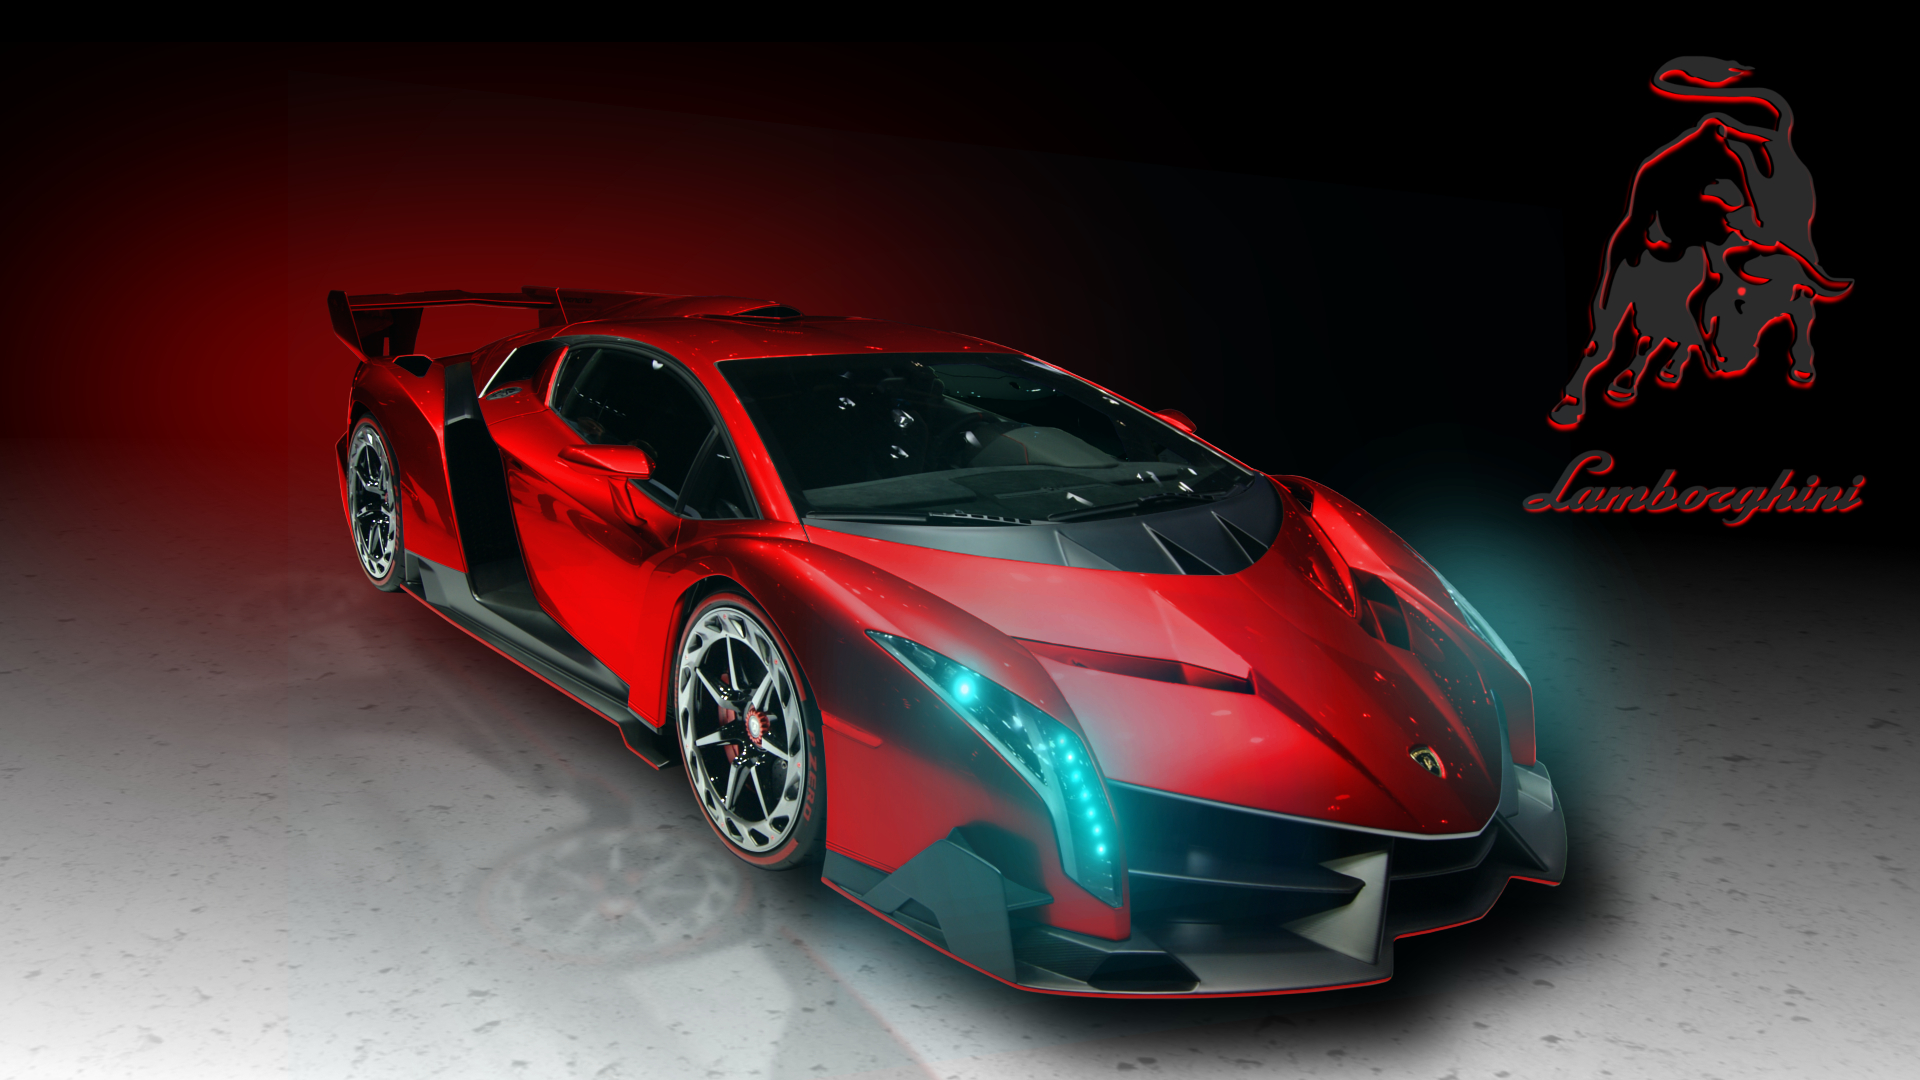 Download Red And Black Lamborghini Wallpaper Gallery